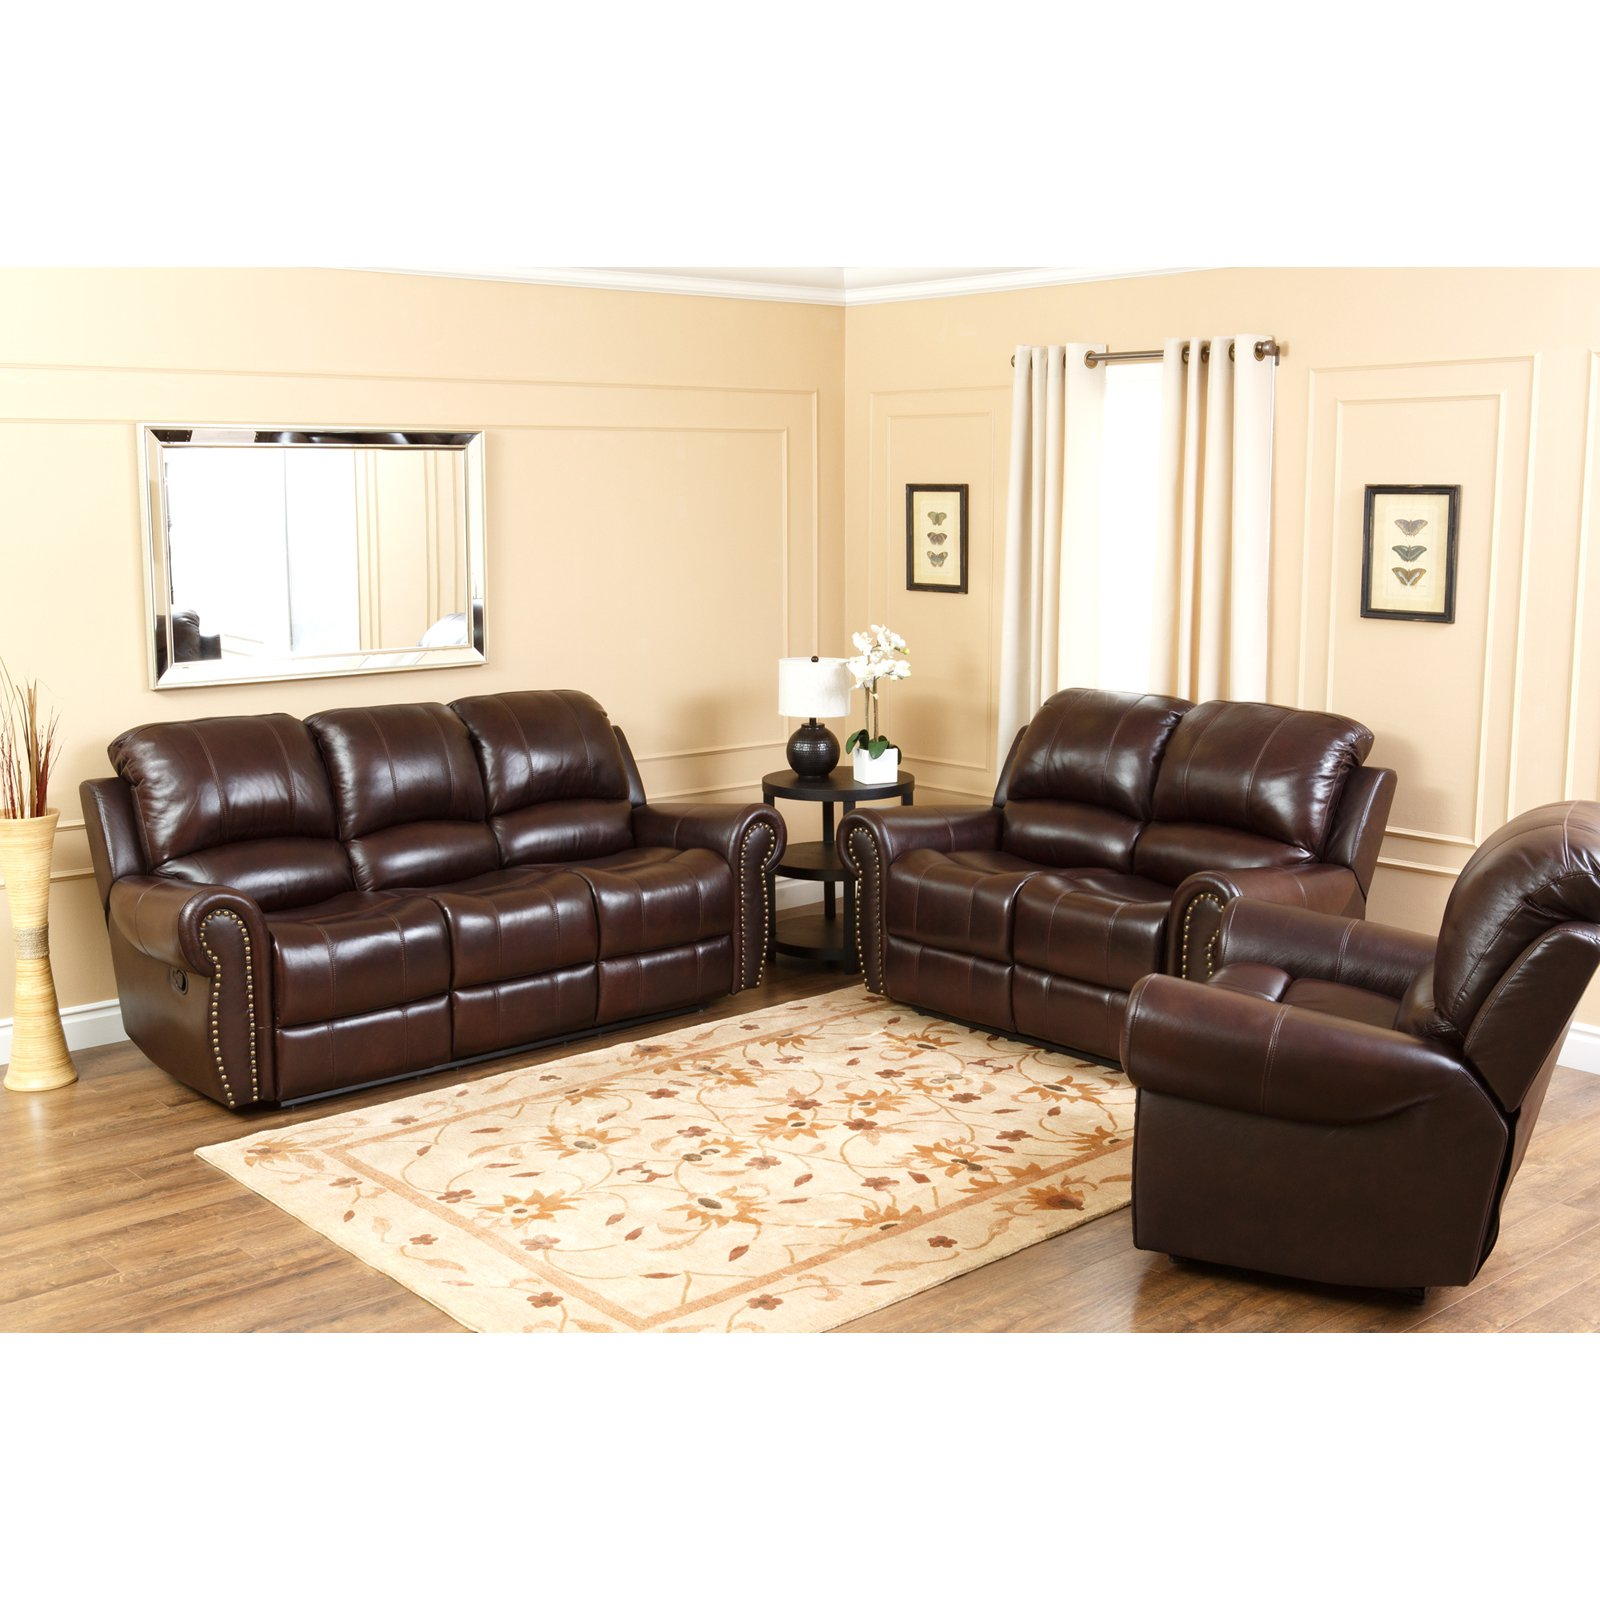 Furniture Classy Costco Living Room Furniture For Your Living Room for 10 Smart Tricks of How to Improve Costco Living Room Sets